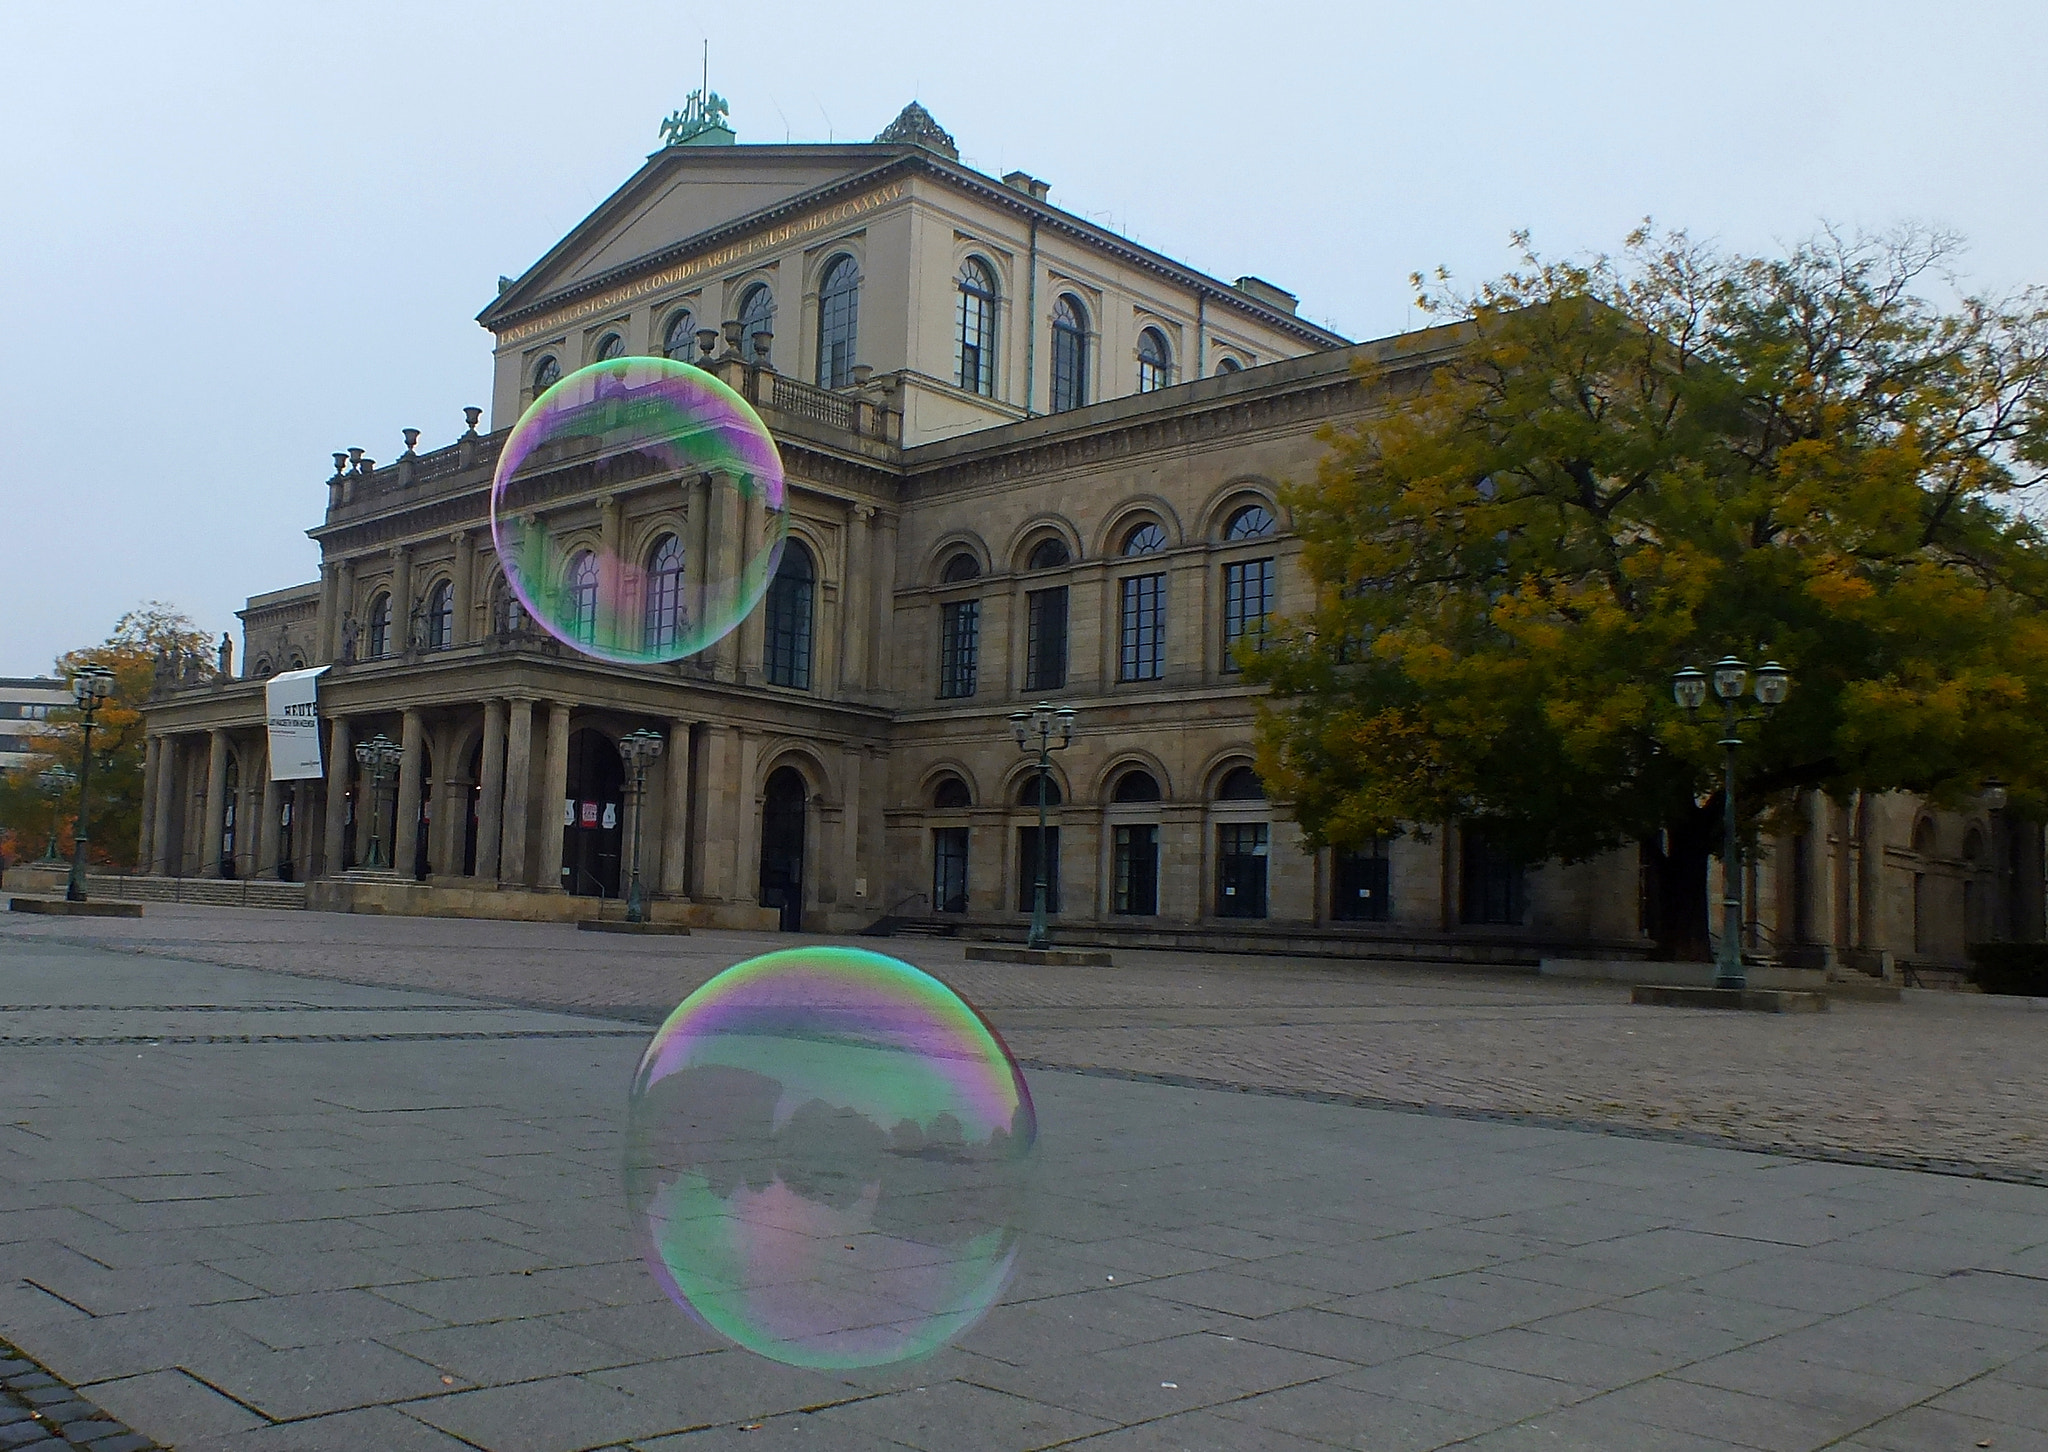 Photograph Opera with Bubbles 01 by Winfried von Esmarch on 500px